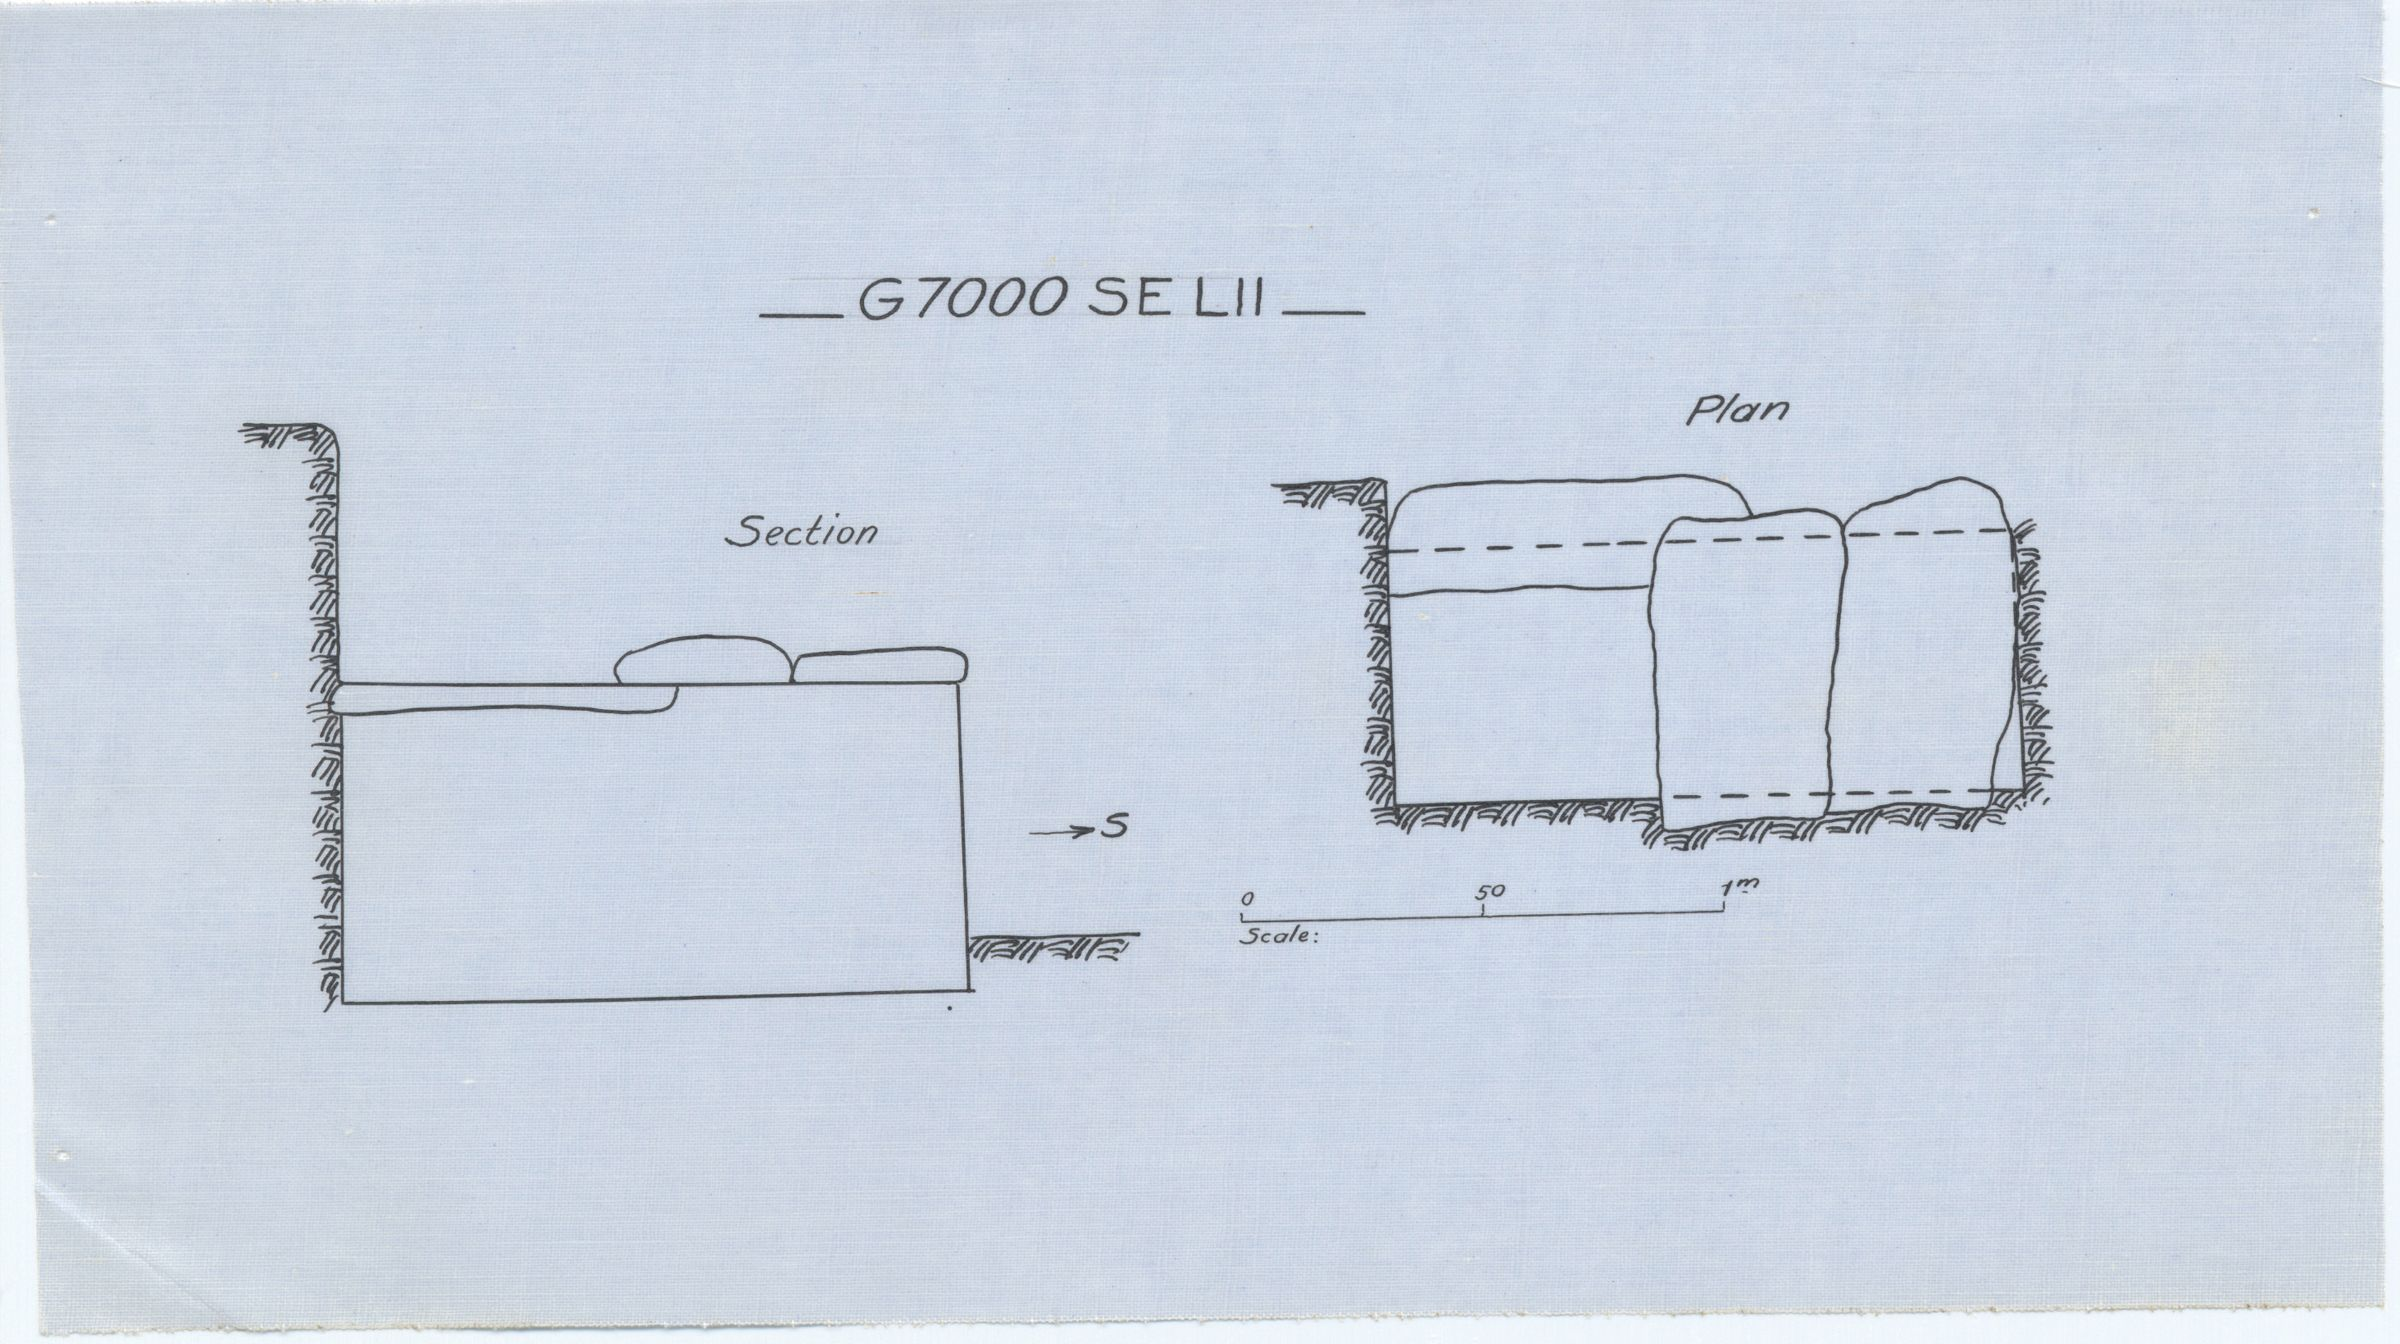 Maps and plans: G 7000 SE 52